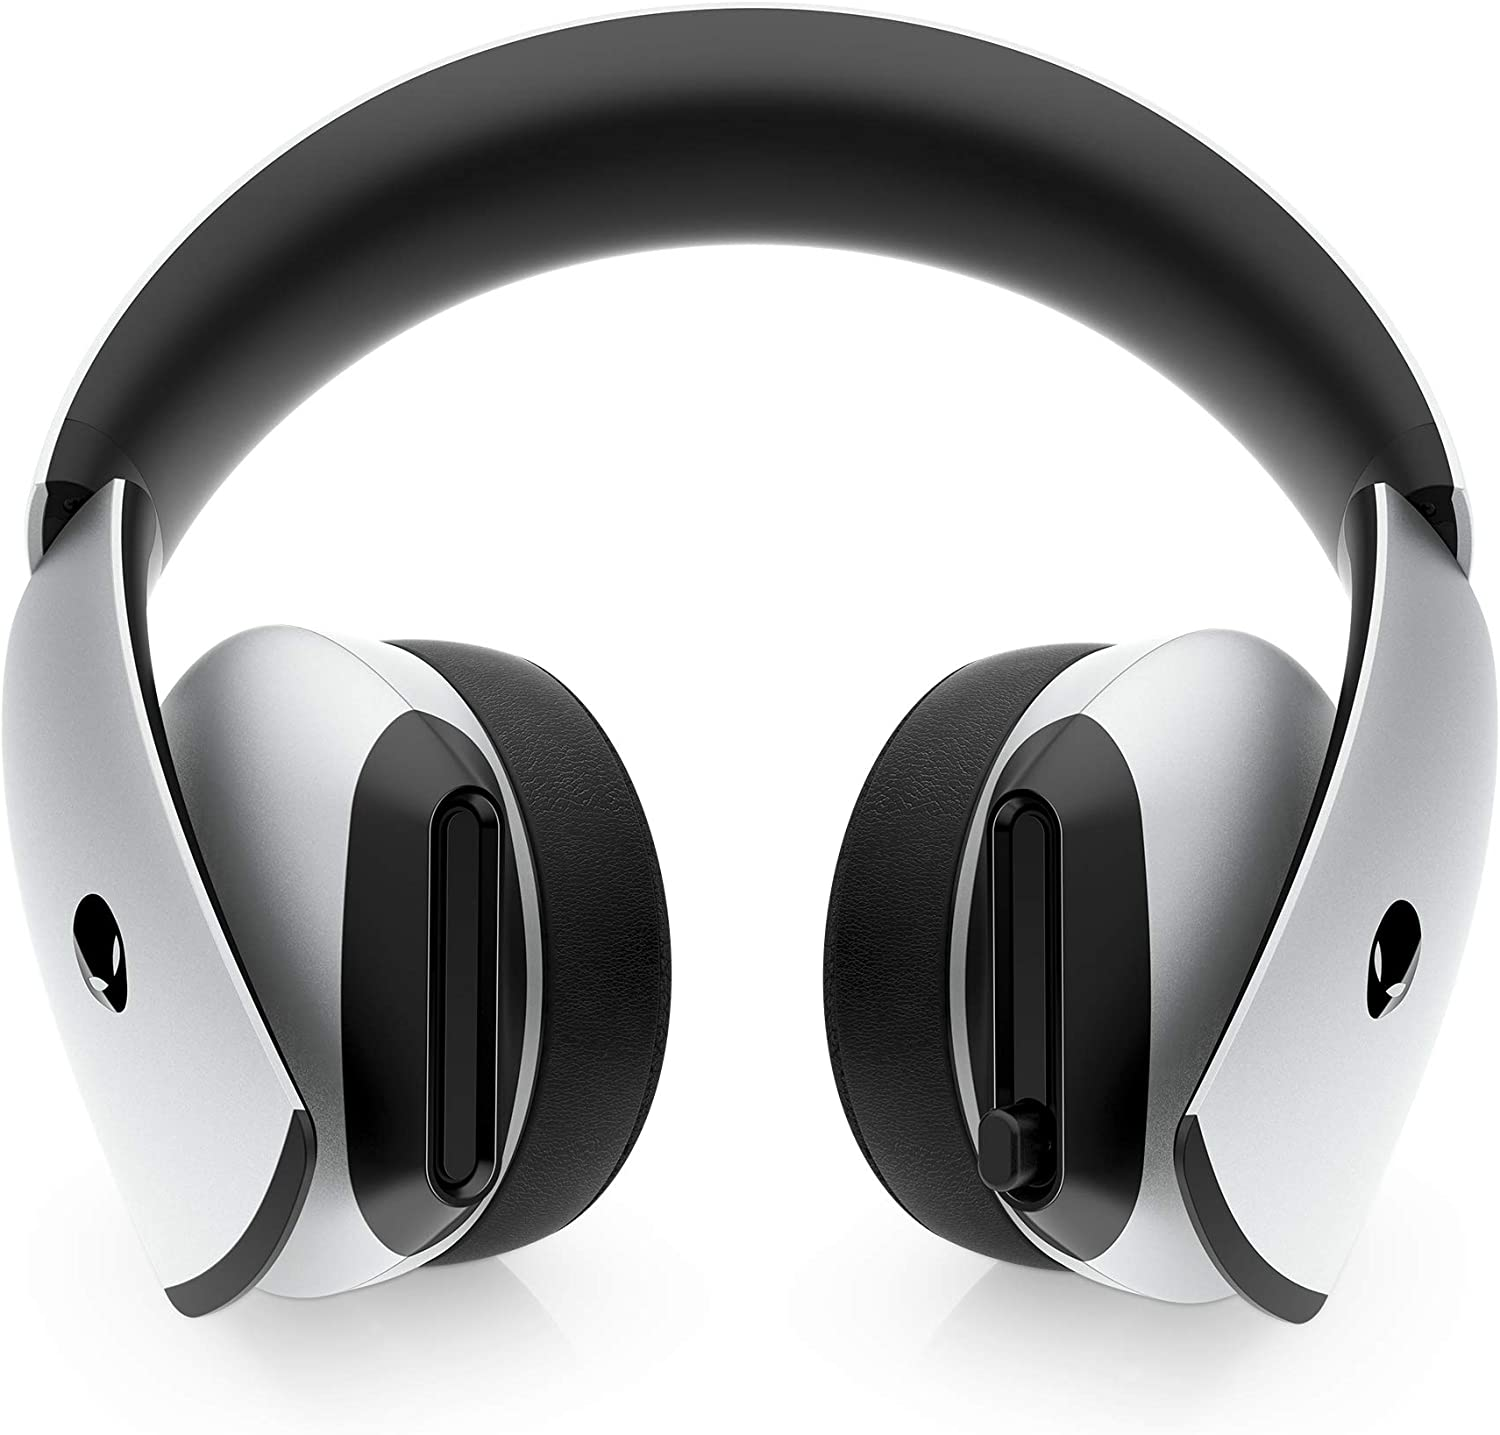 Buy Alienware 7.1 PC Gaming Headset AW510H-Light: 50mm Hi-Res Drivers -  Noise Cancelling Mic - Multi Platform Compatible(PS4,Xbox One,Switch) via  3.5mm Jack, Gray Online in Turkey. B07V5DJY4D